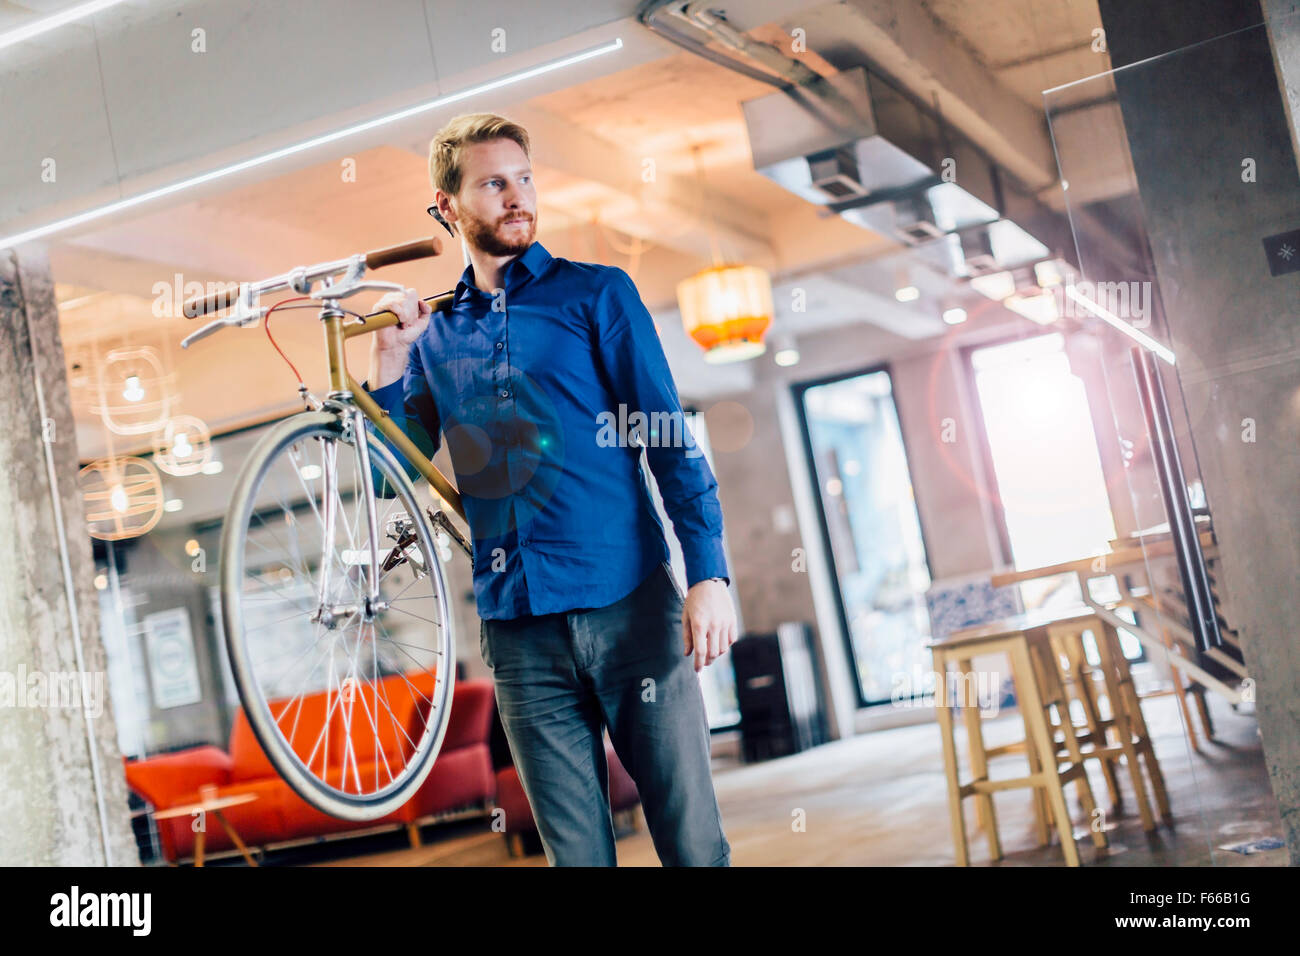 Using bicycle to go to work instead of polluting the environment. Green planet - Stock Image